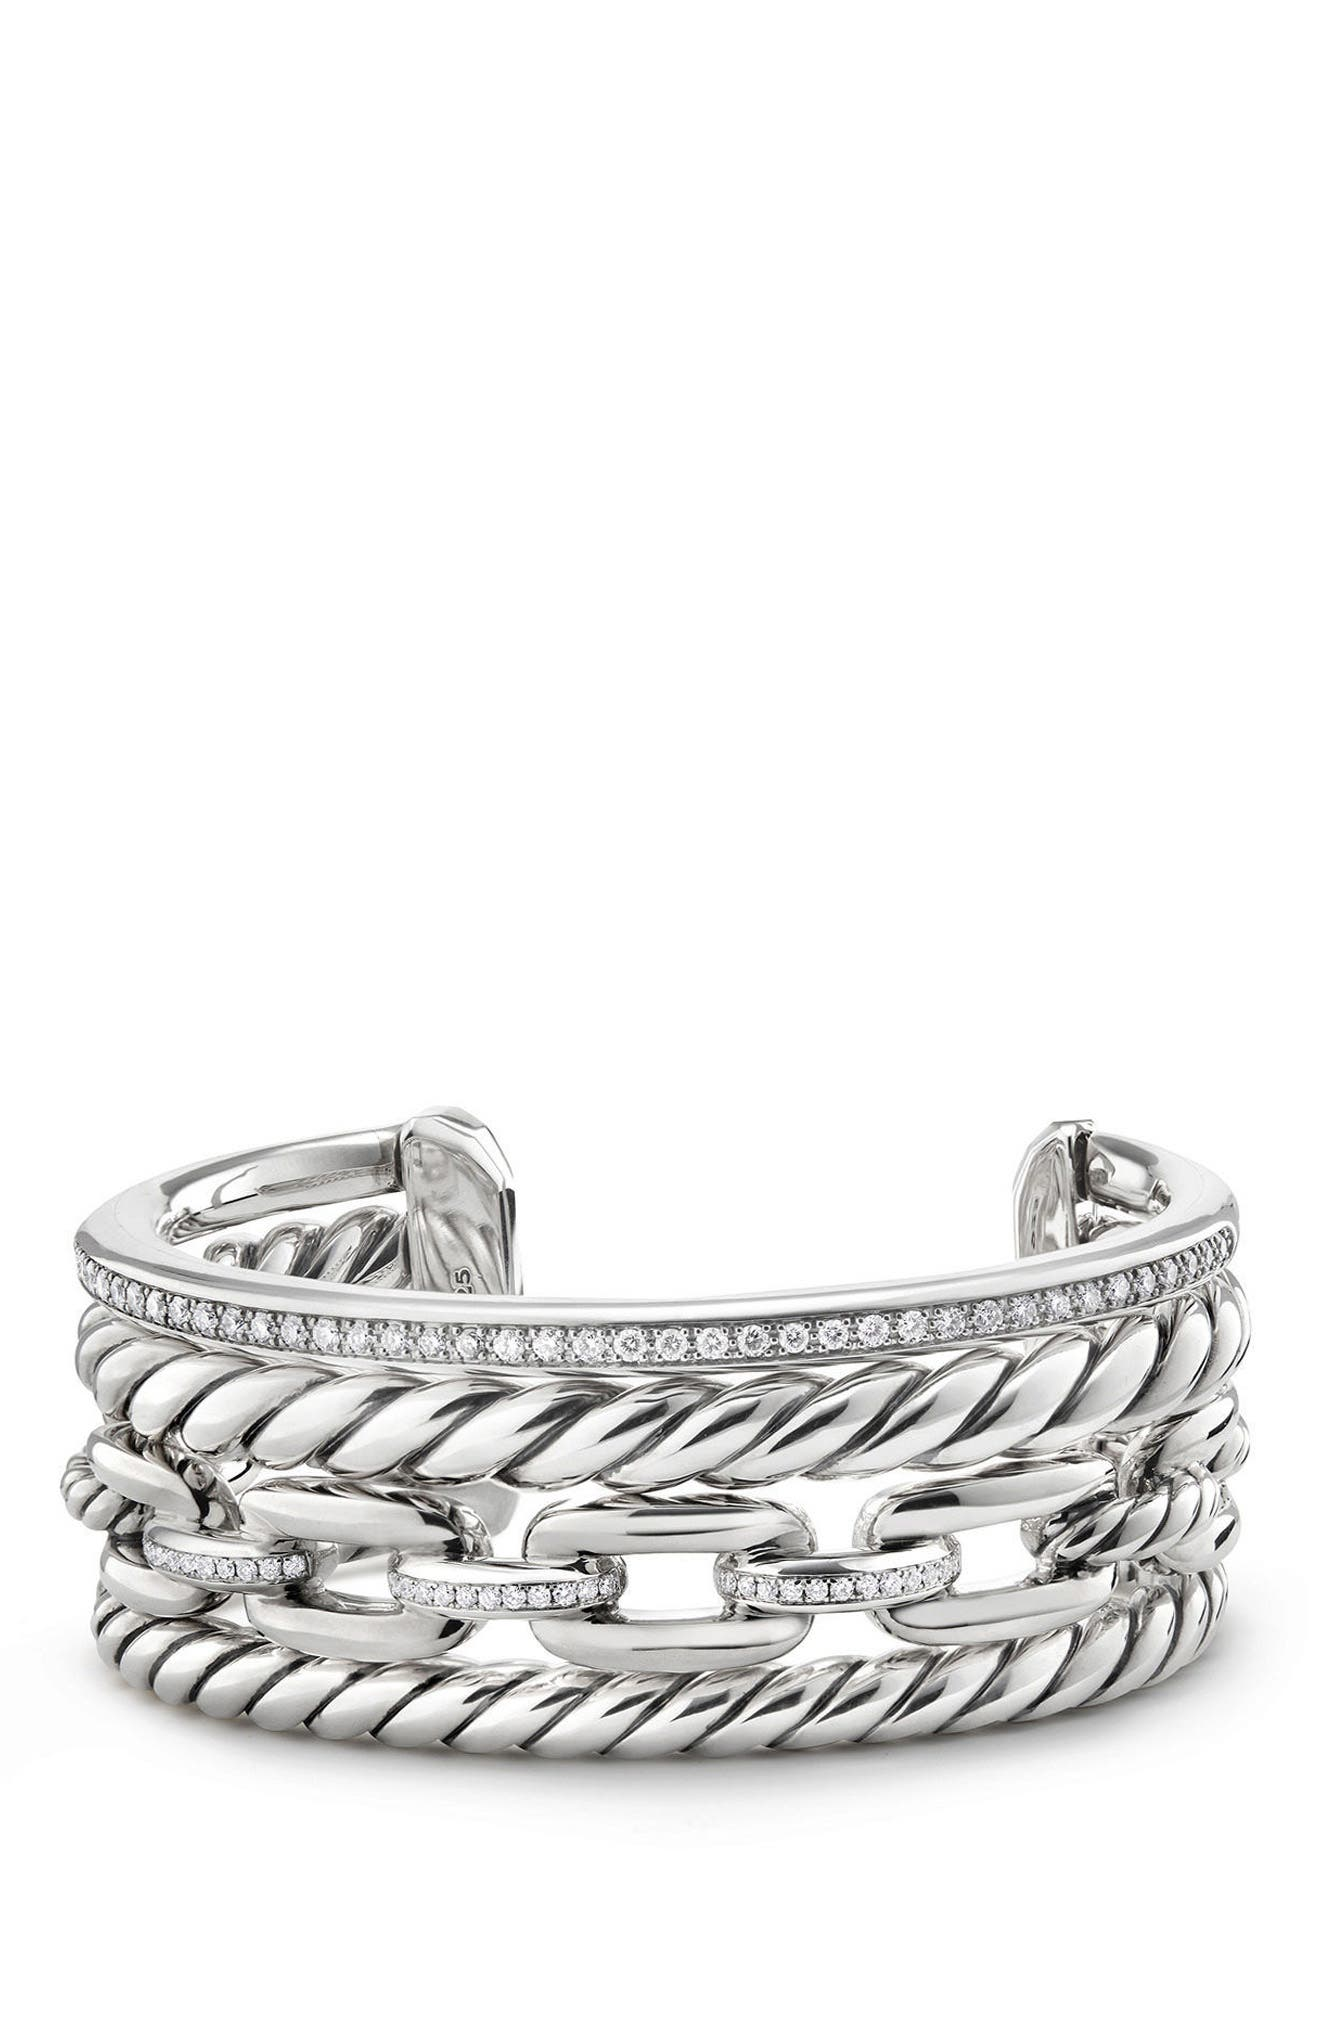 Wellesley Link Cuff with Diamonds, 27mm,                         Main,                         color, SILVER